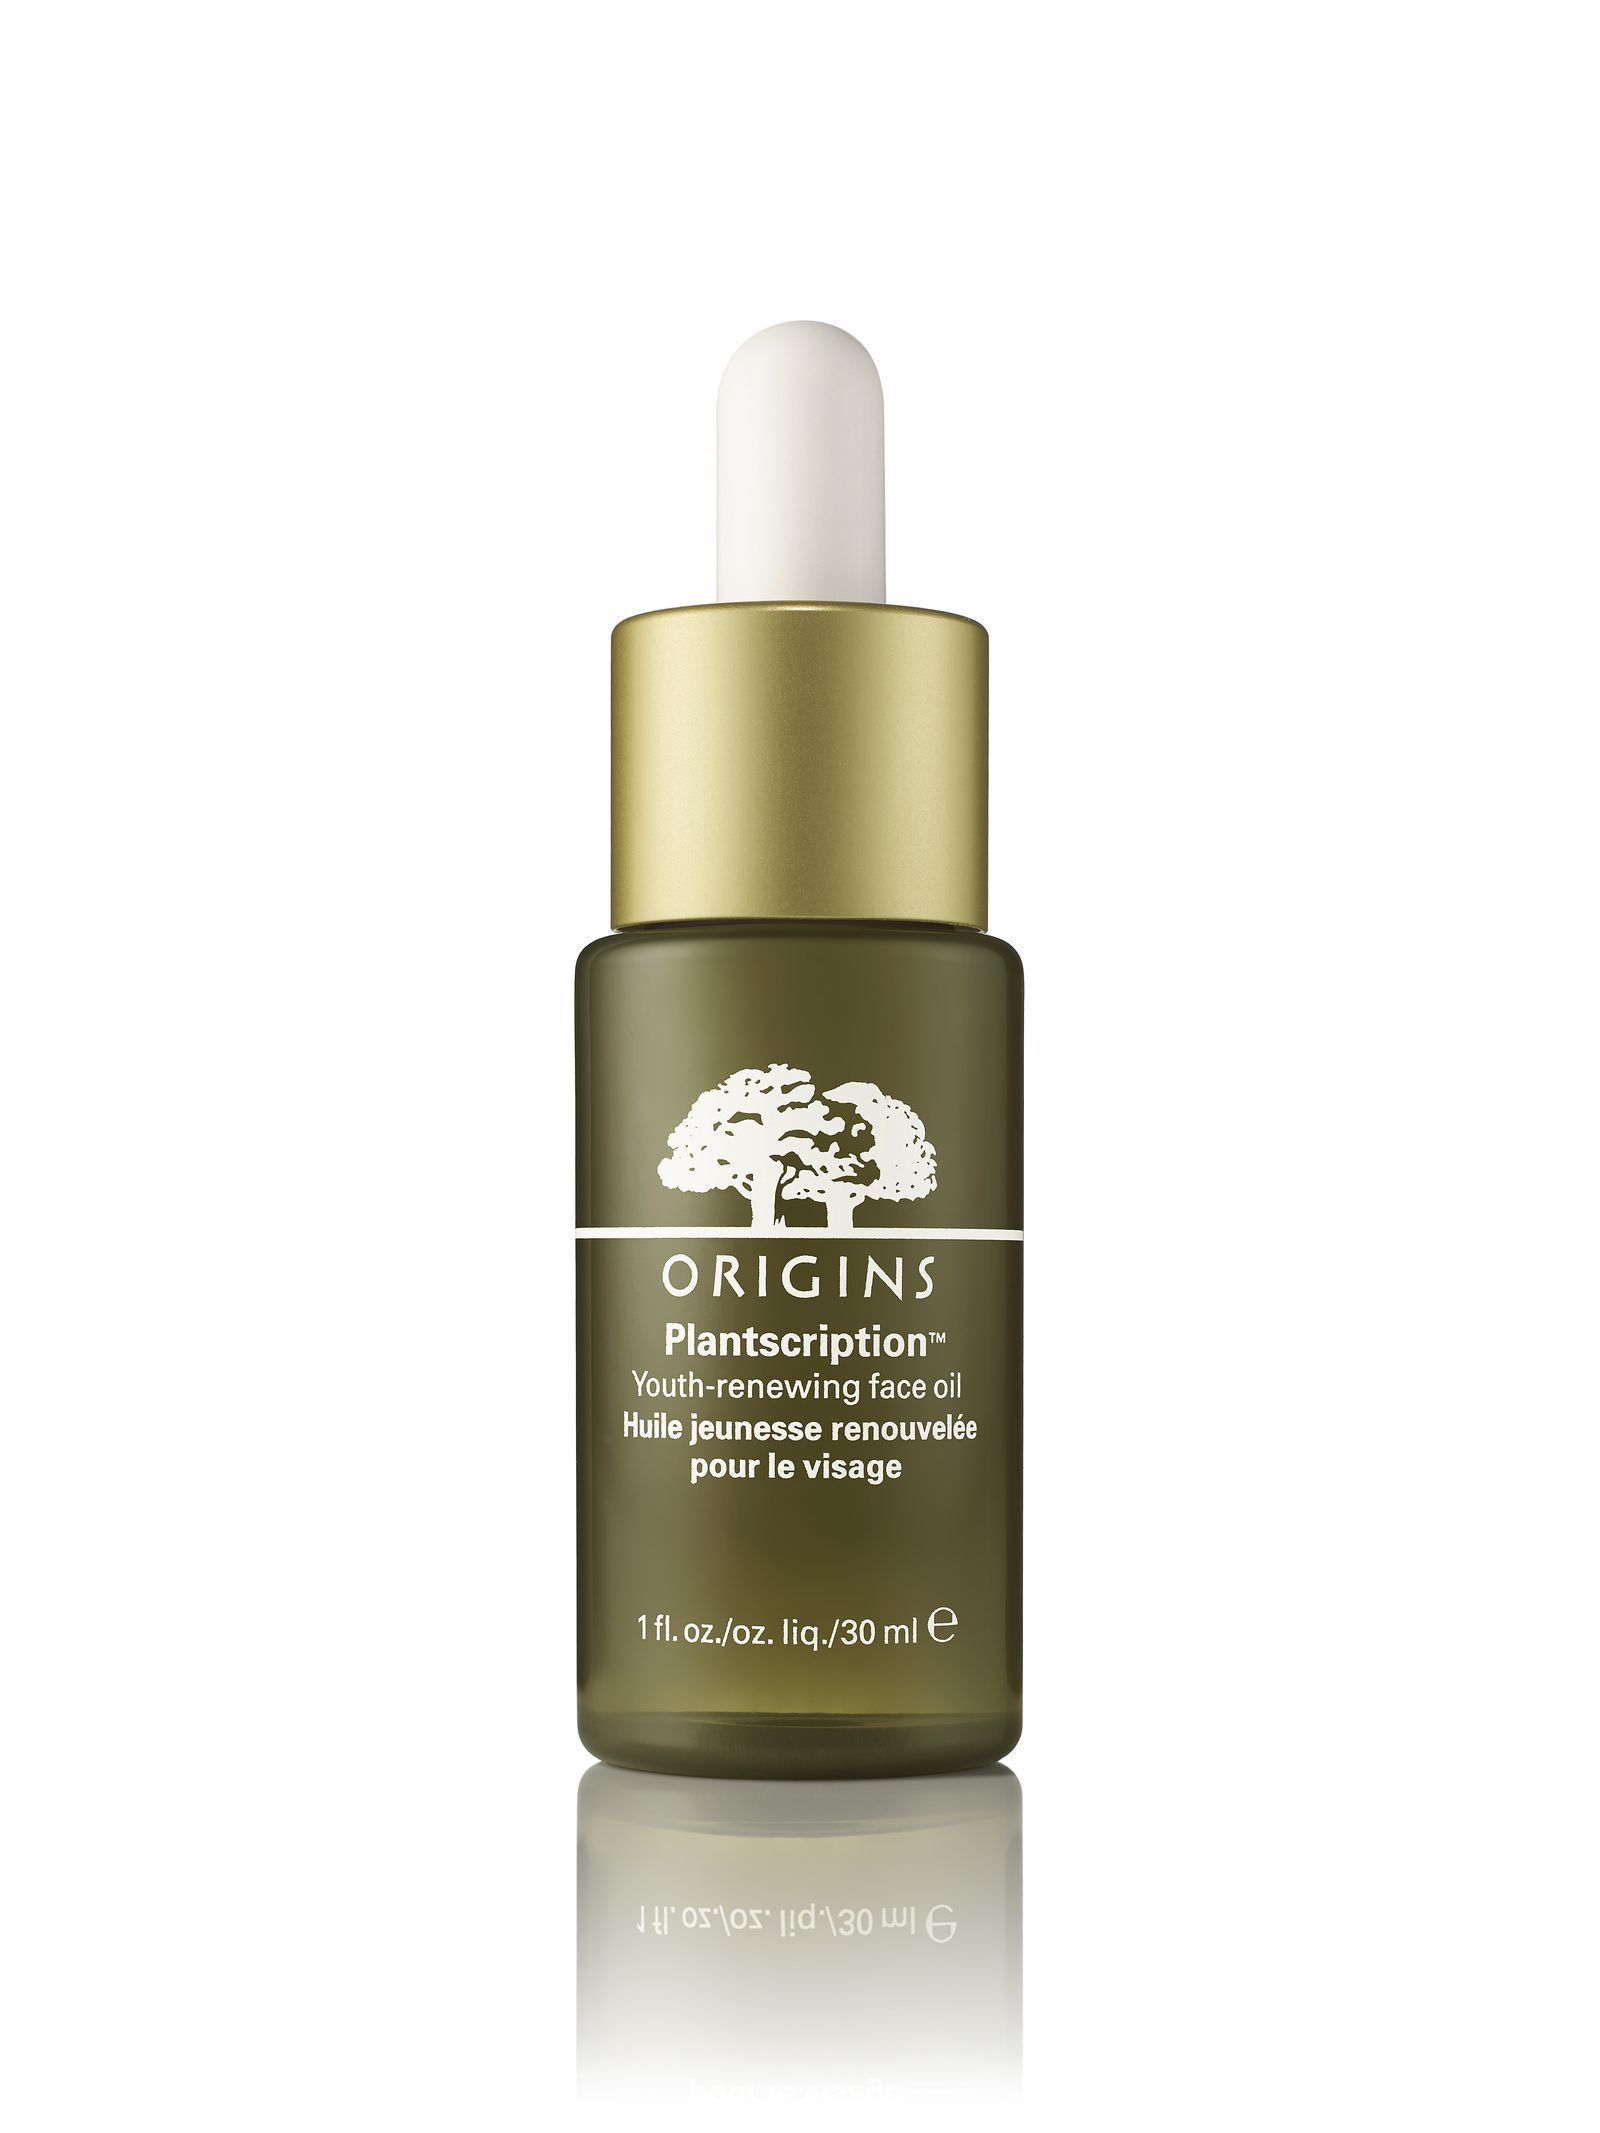 How to Choose the Best Face Oil for Your Skin Type